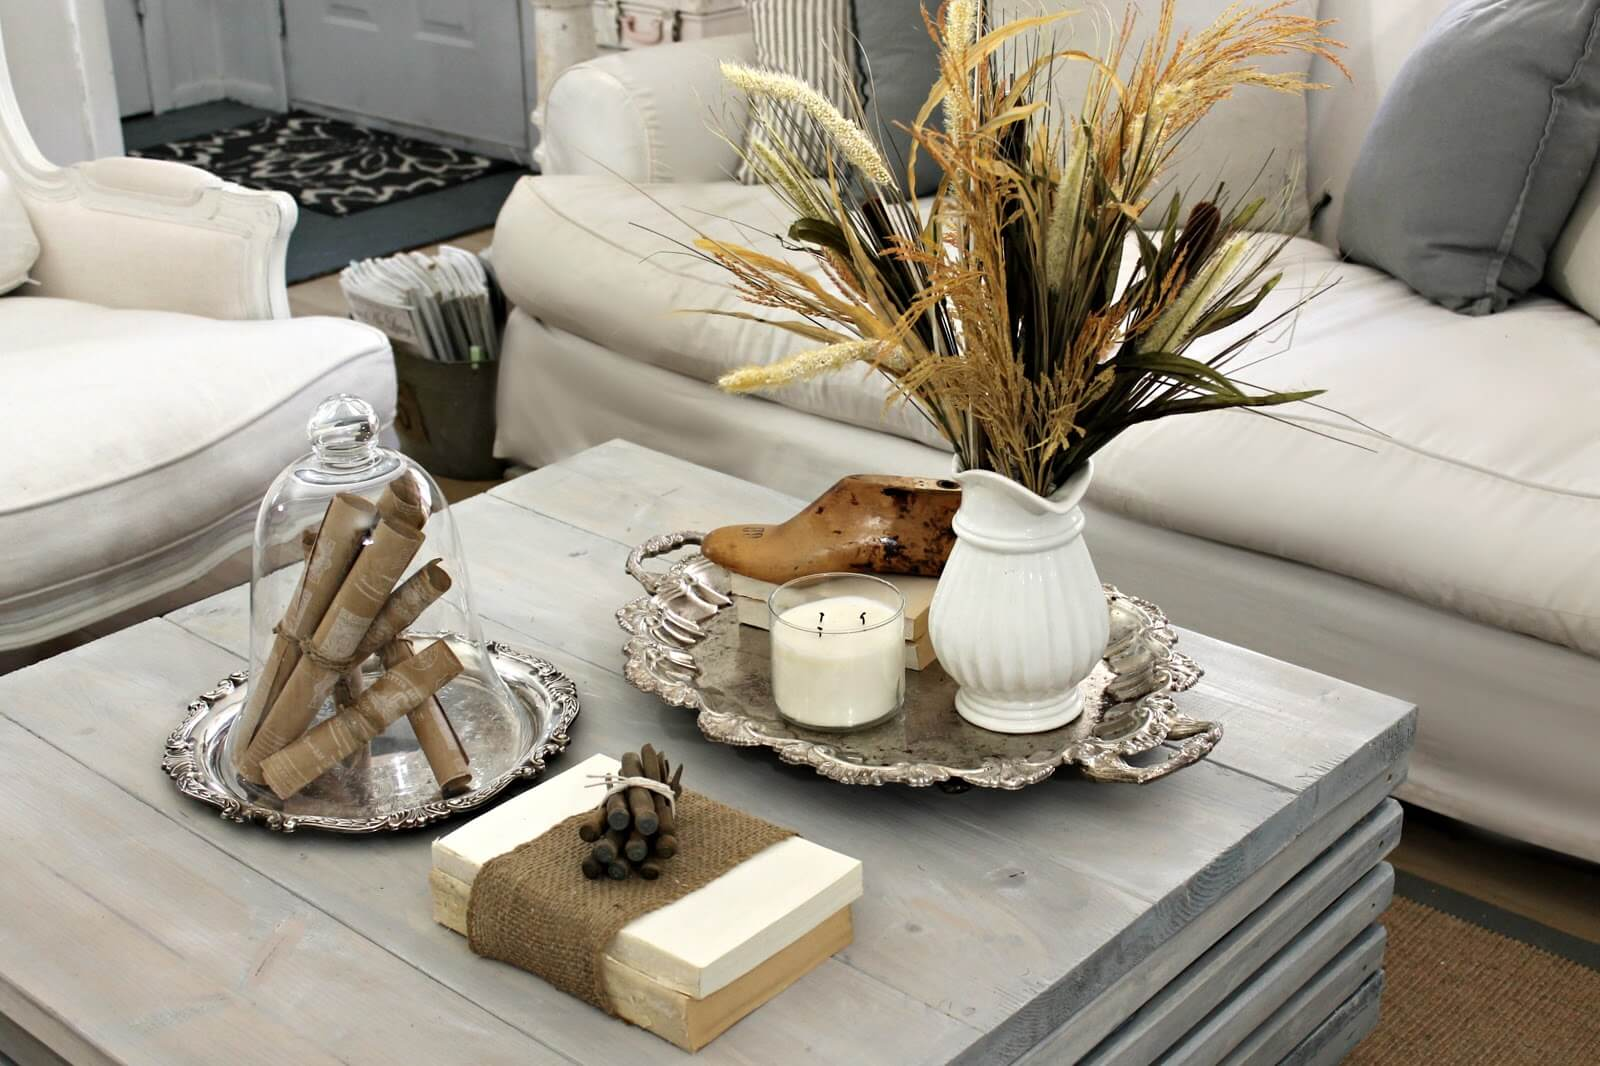 Living room table decorations - 20 Earth Toned Brown And White Natural Element Display With Silver Accents